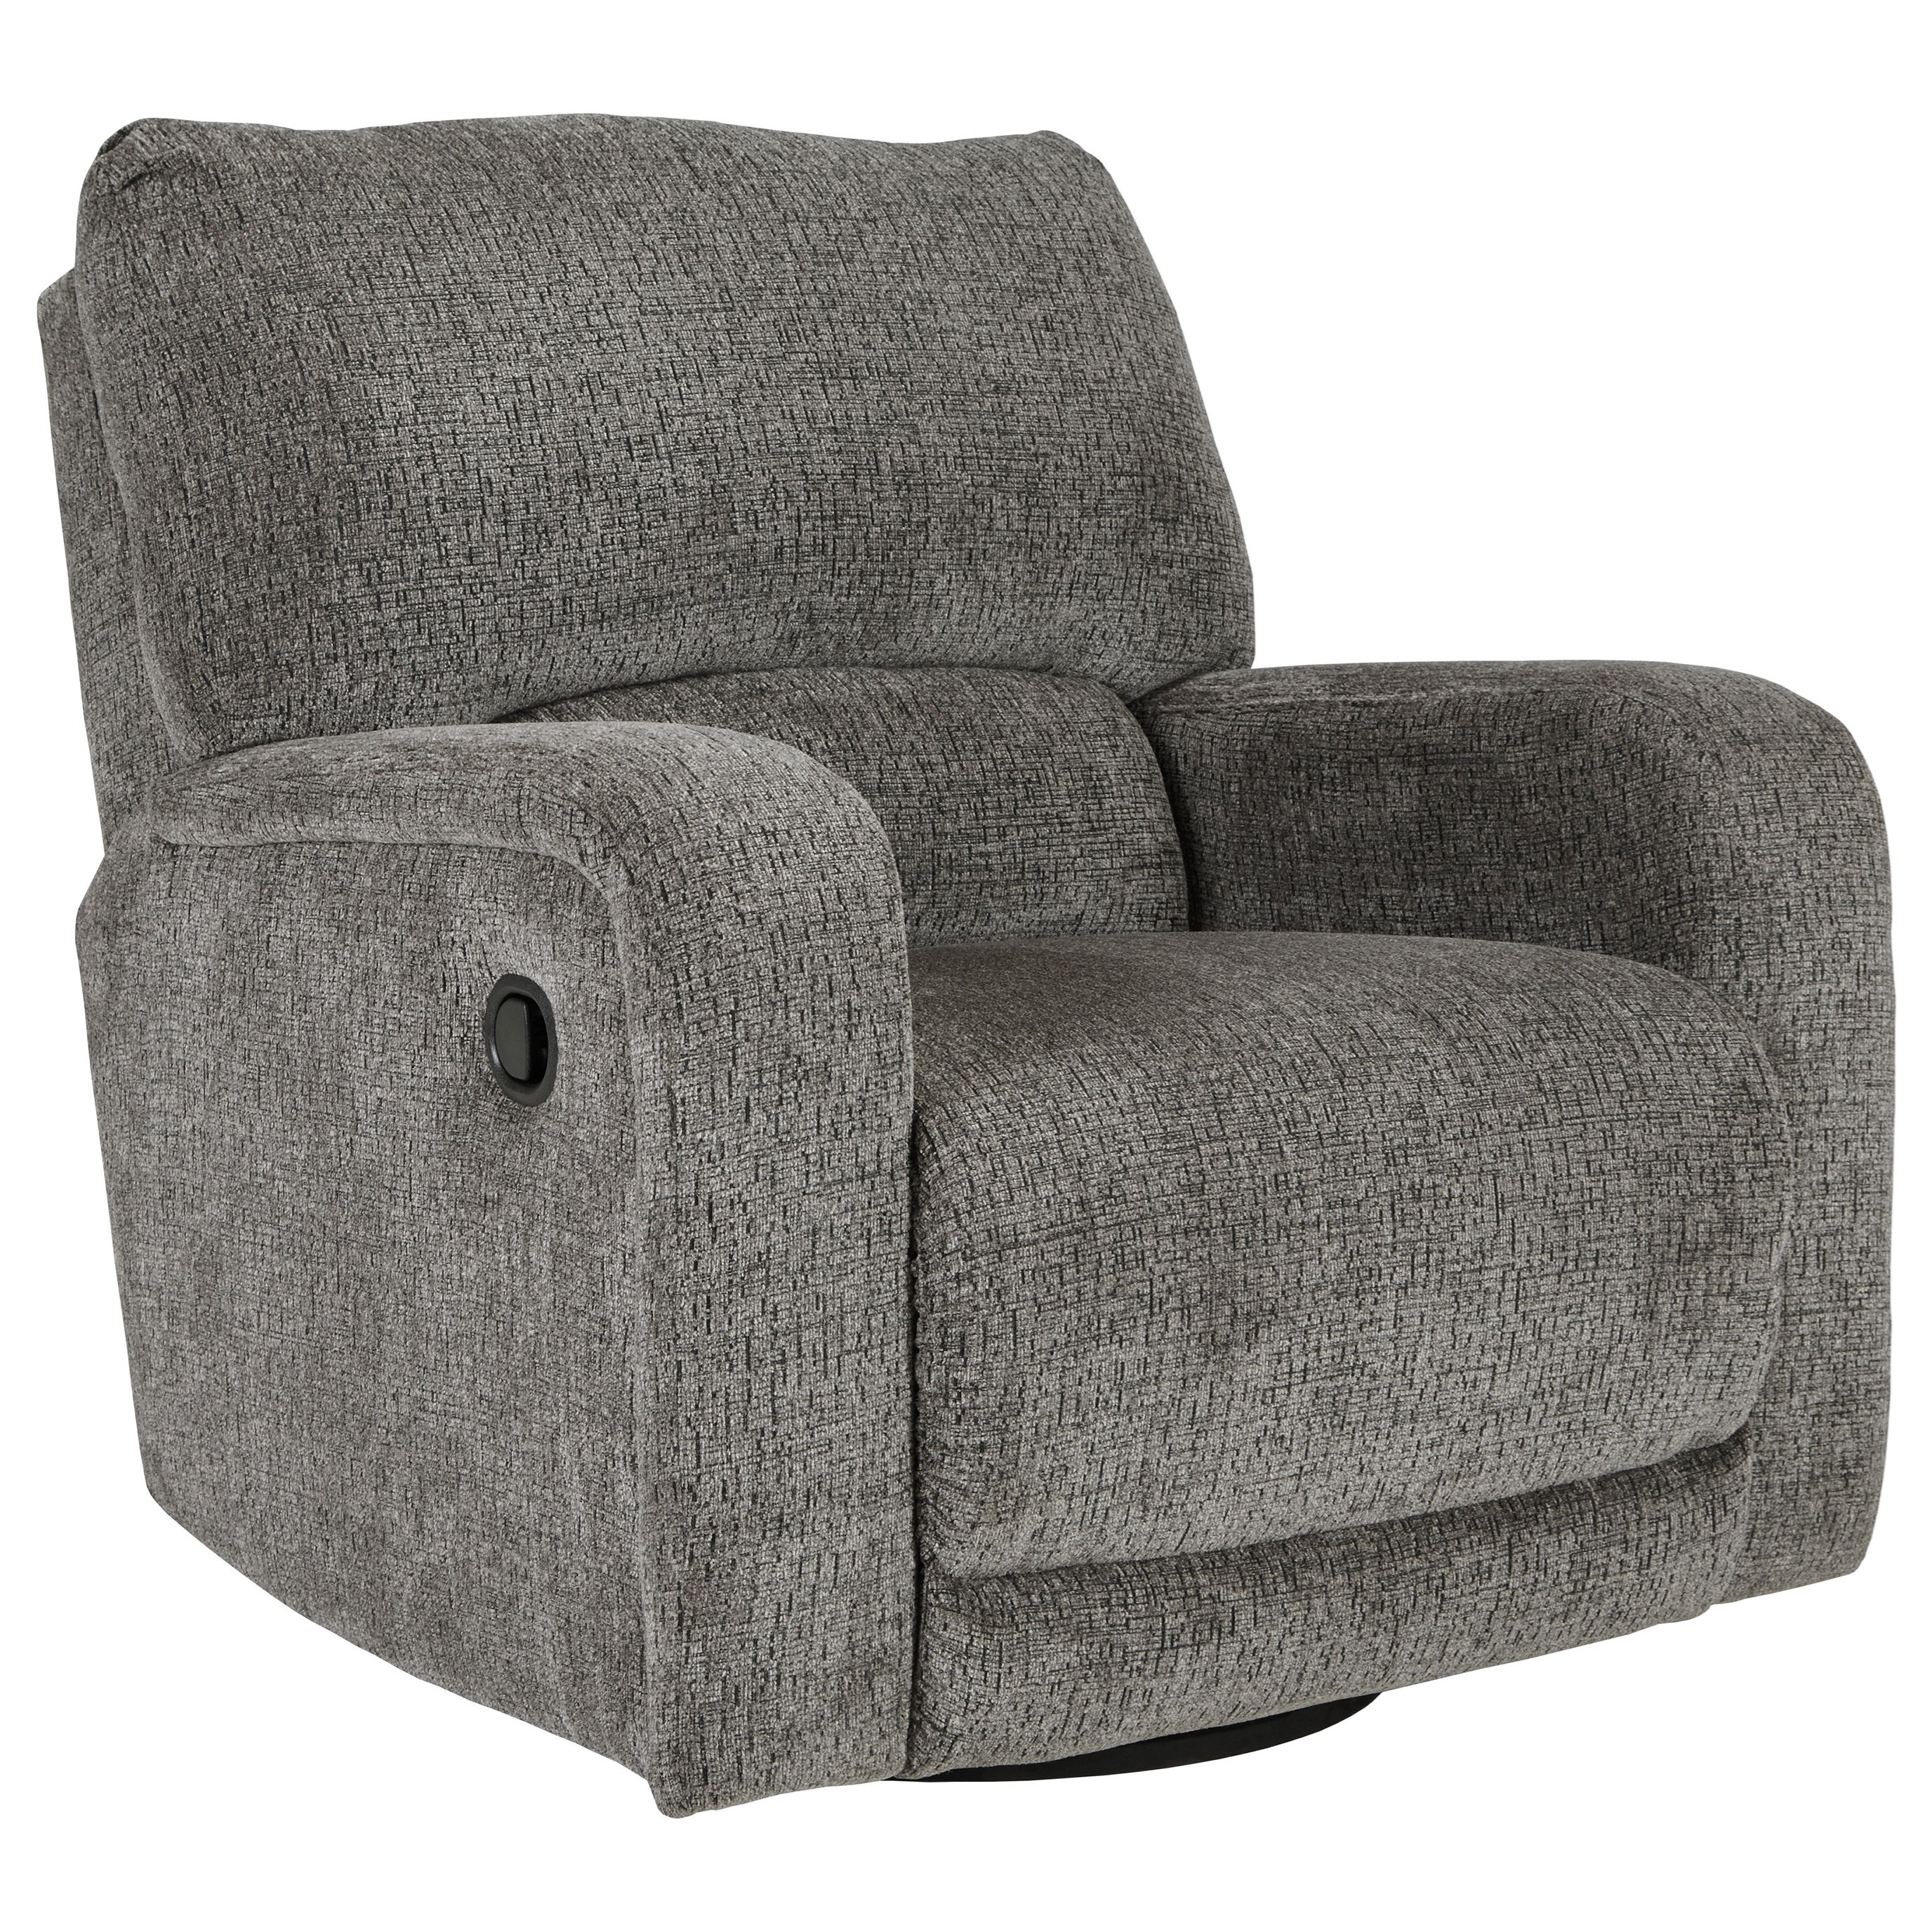 Wittlich Swivel Glider Recliner by Signature Design by Ashley at Rife's Home Furniture